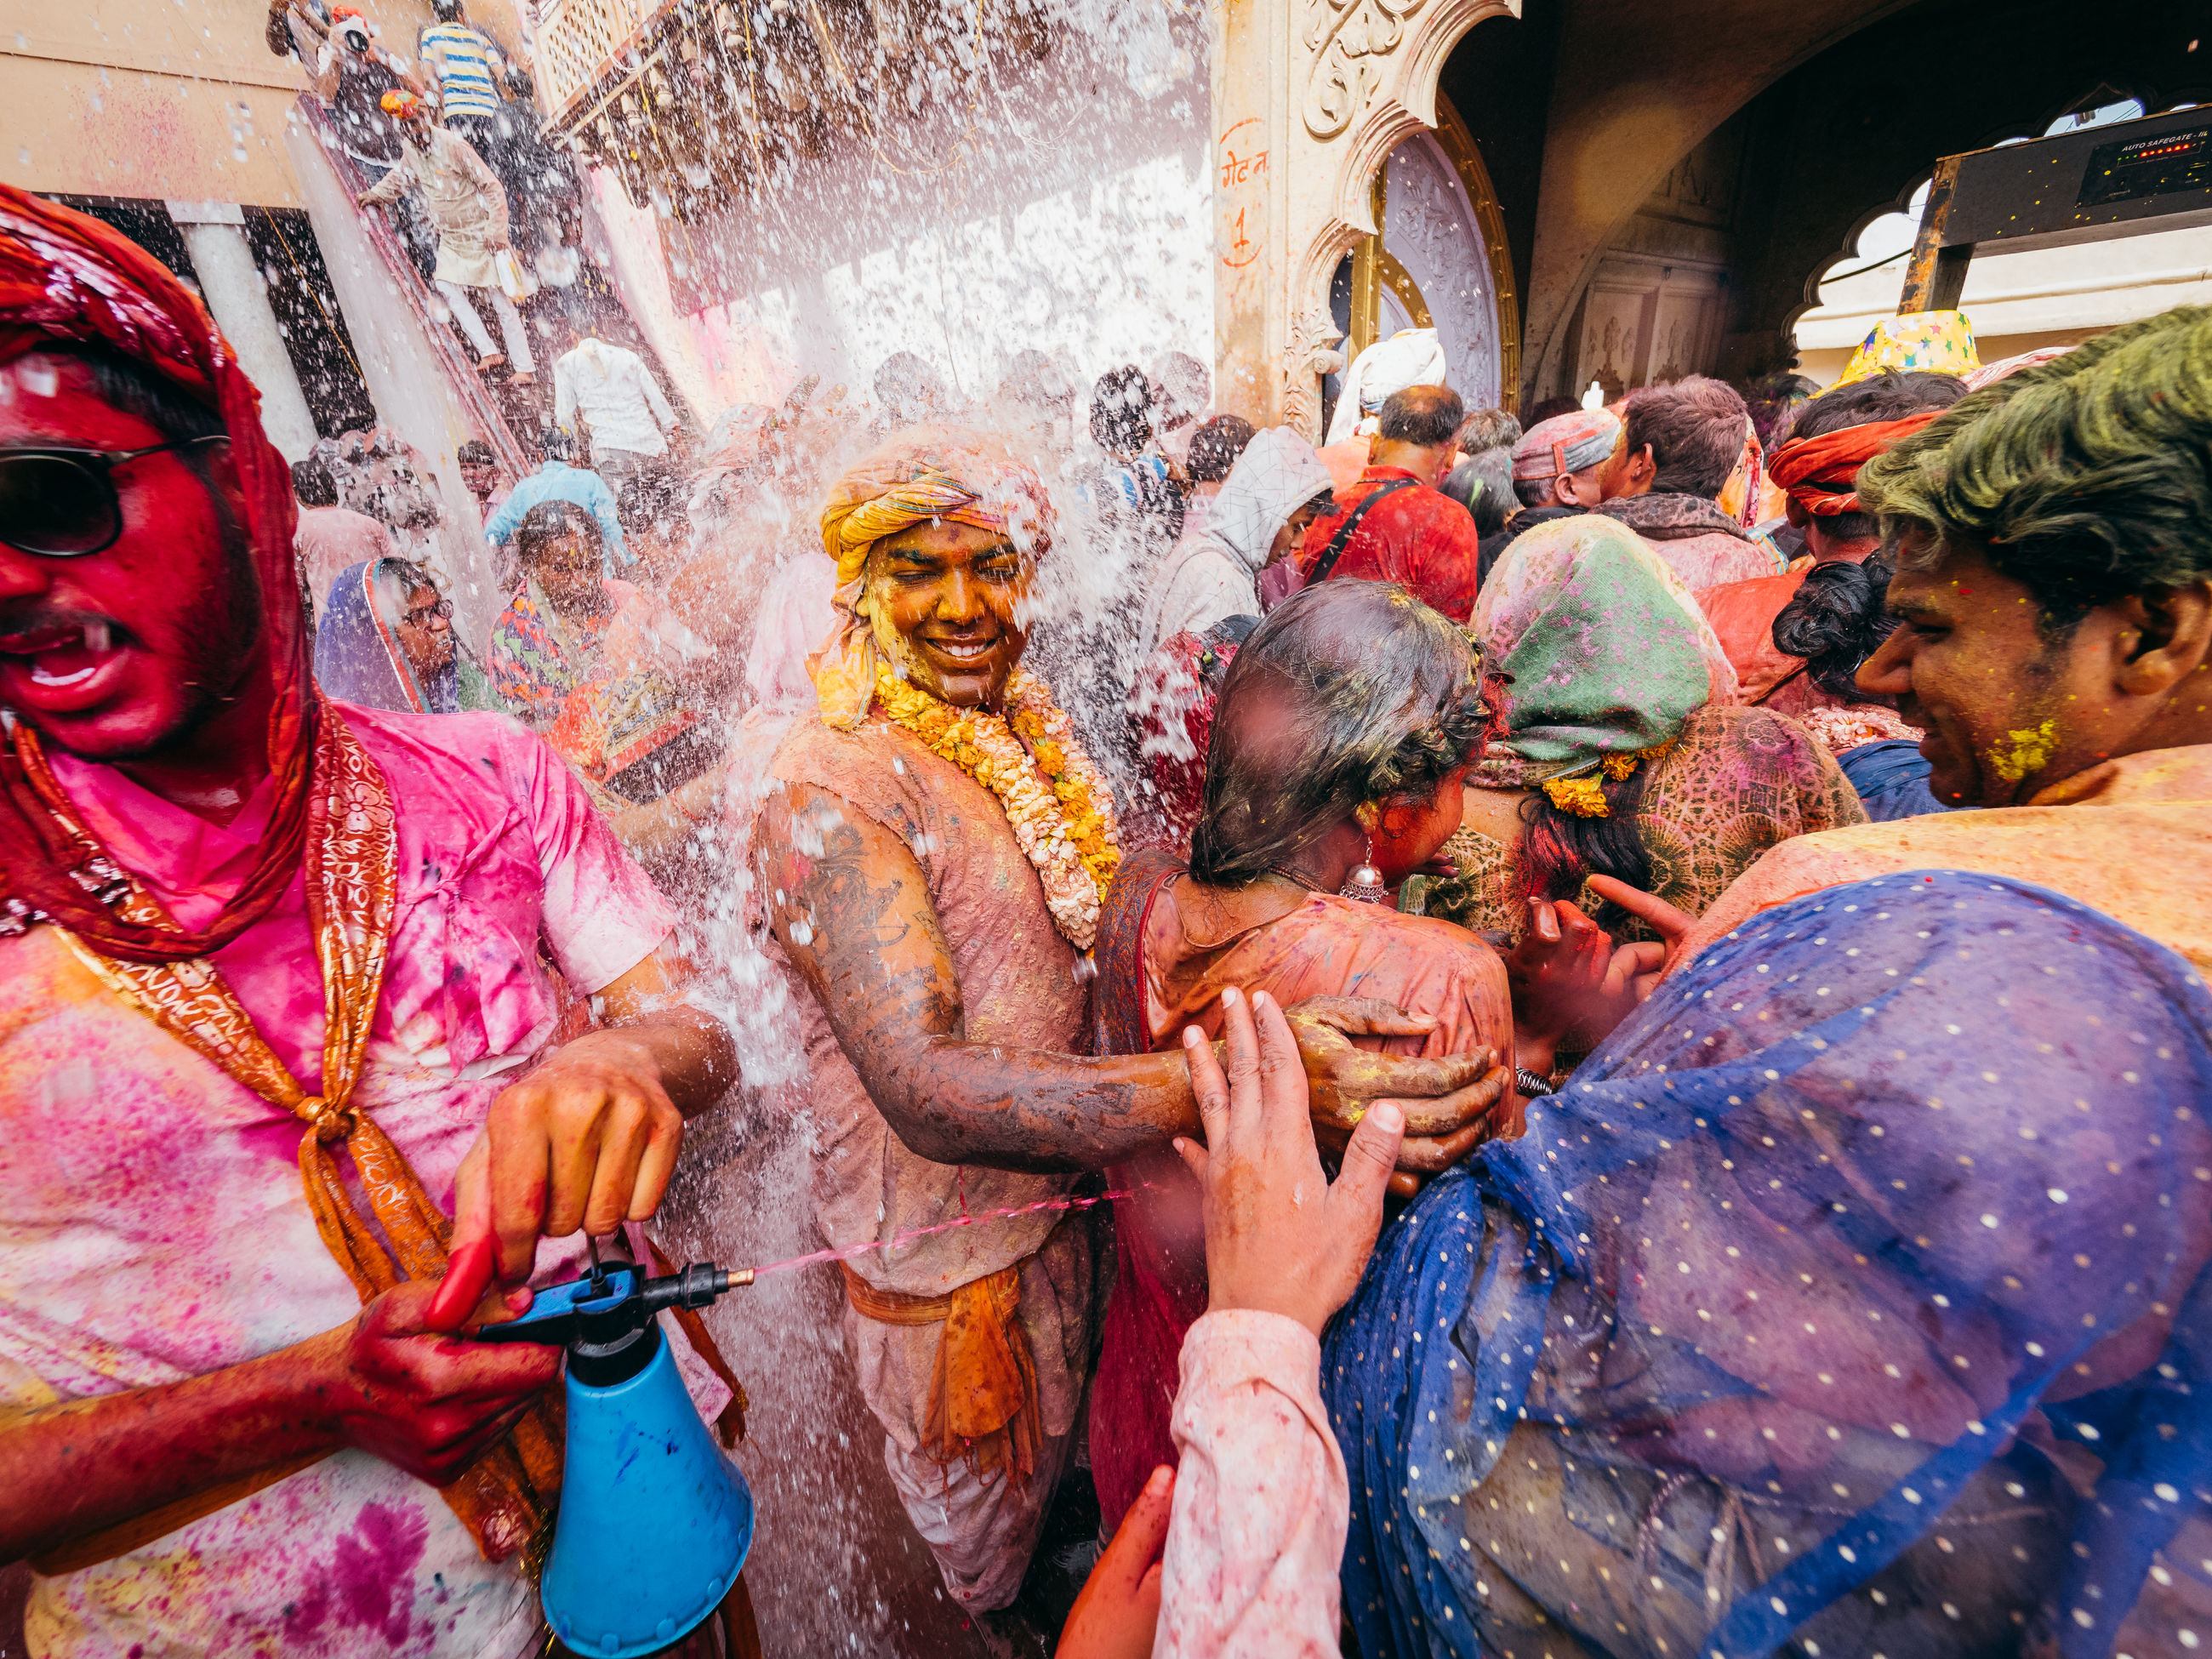 religion, belief, group of people, traditional festival, holi, men, multi colored, traditional clothing, spirituality, celebration, day, happiness, adult, real people, architecture